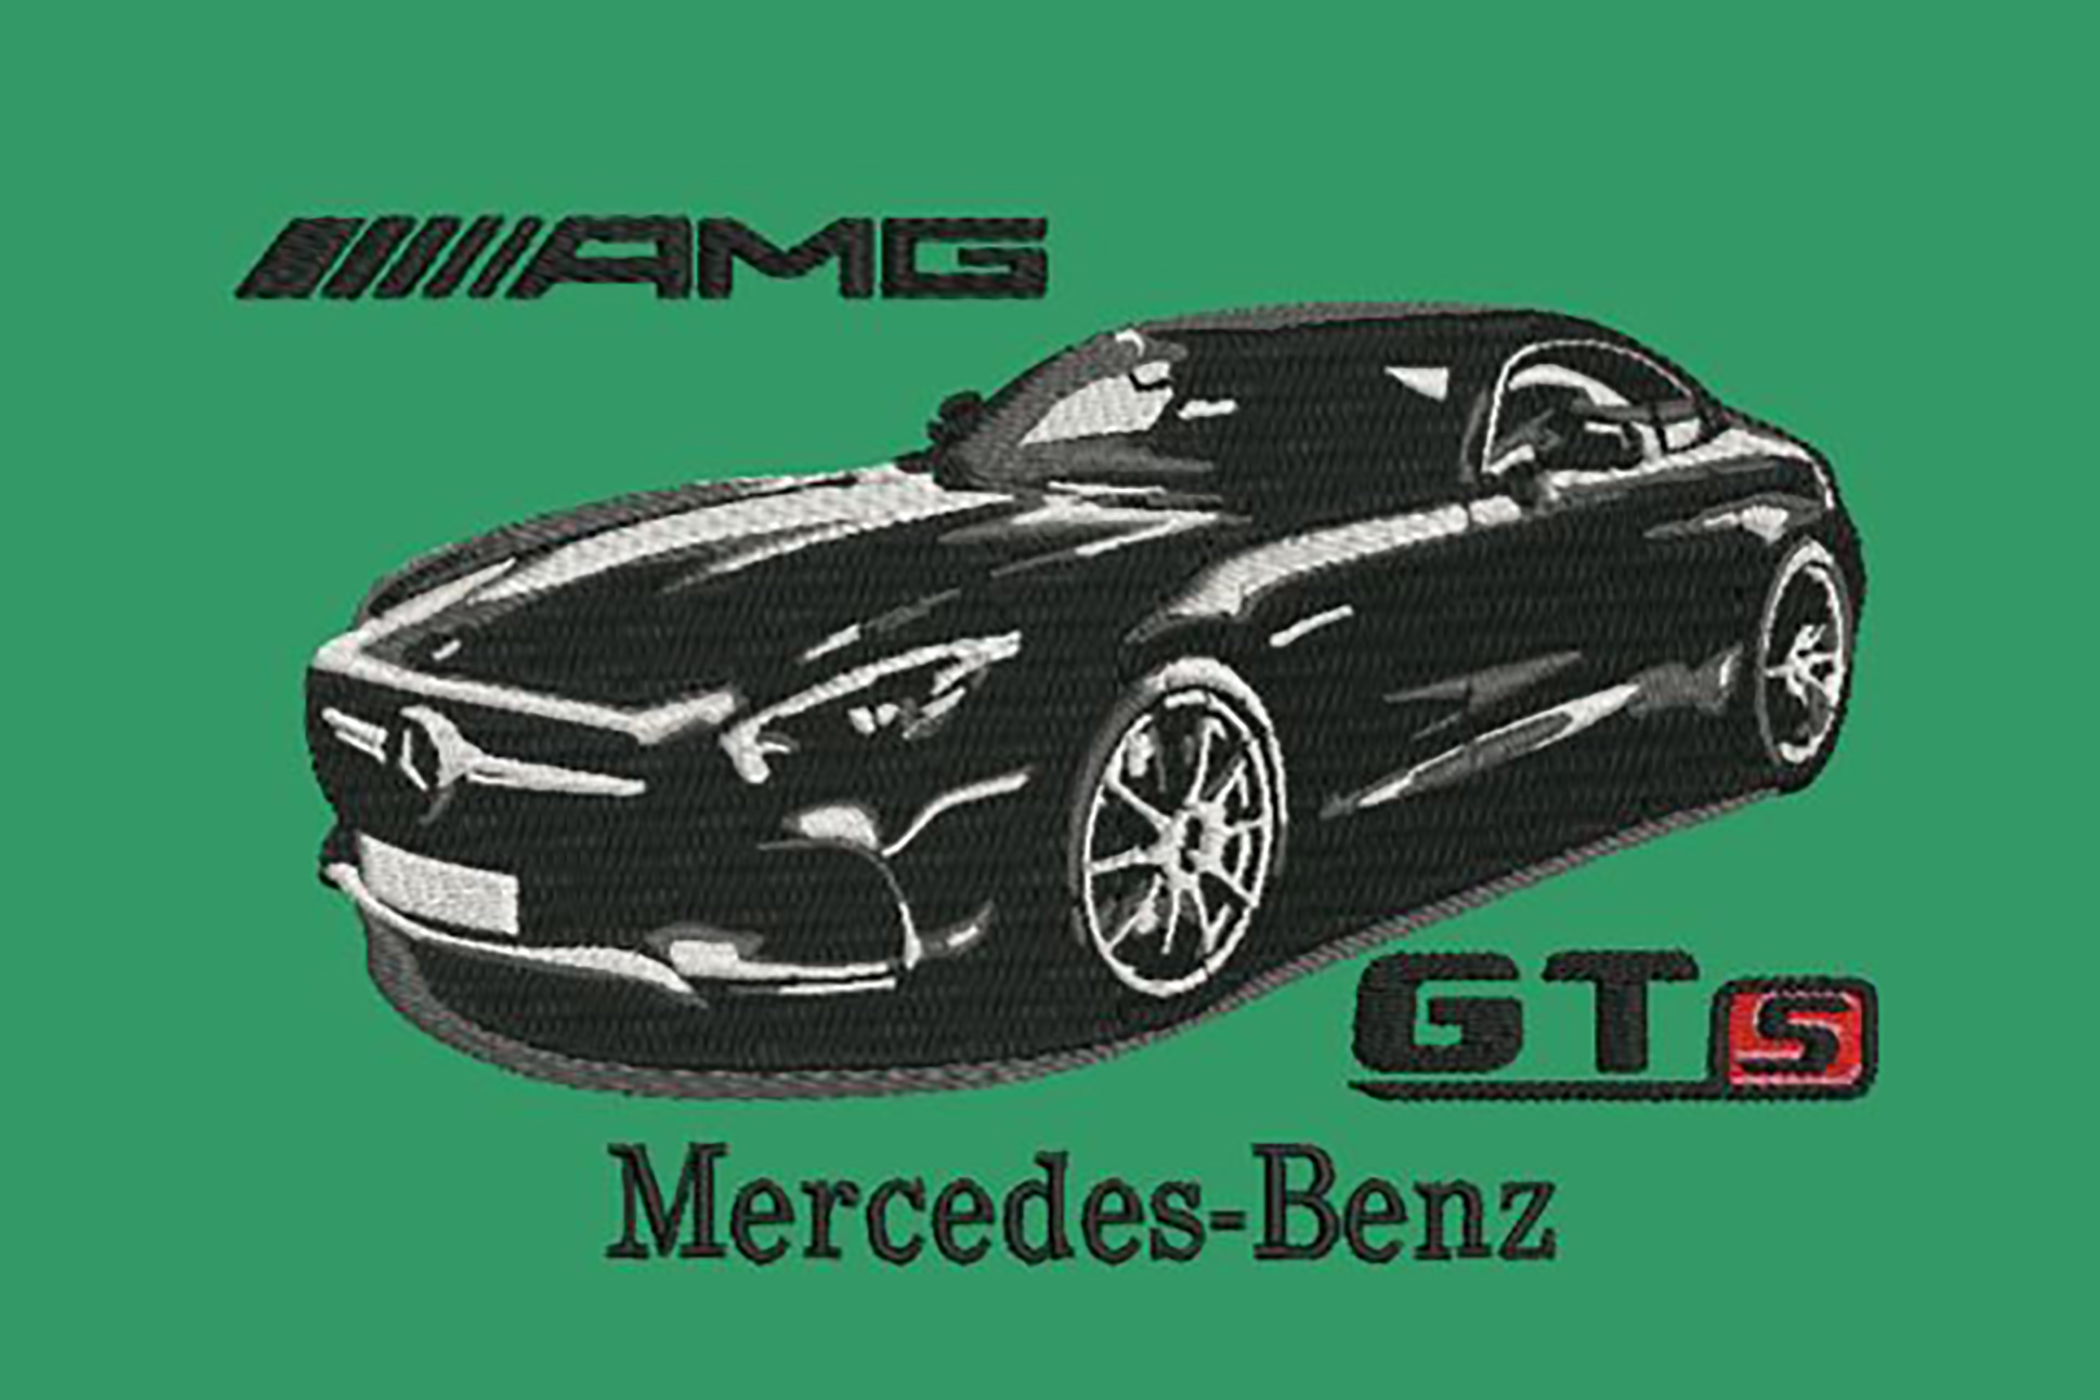 Download Free Mercedes Gts Car Creative Fabrica for Cricut Explore, Silhouette and other cutting machines.